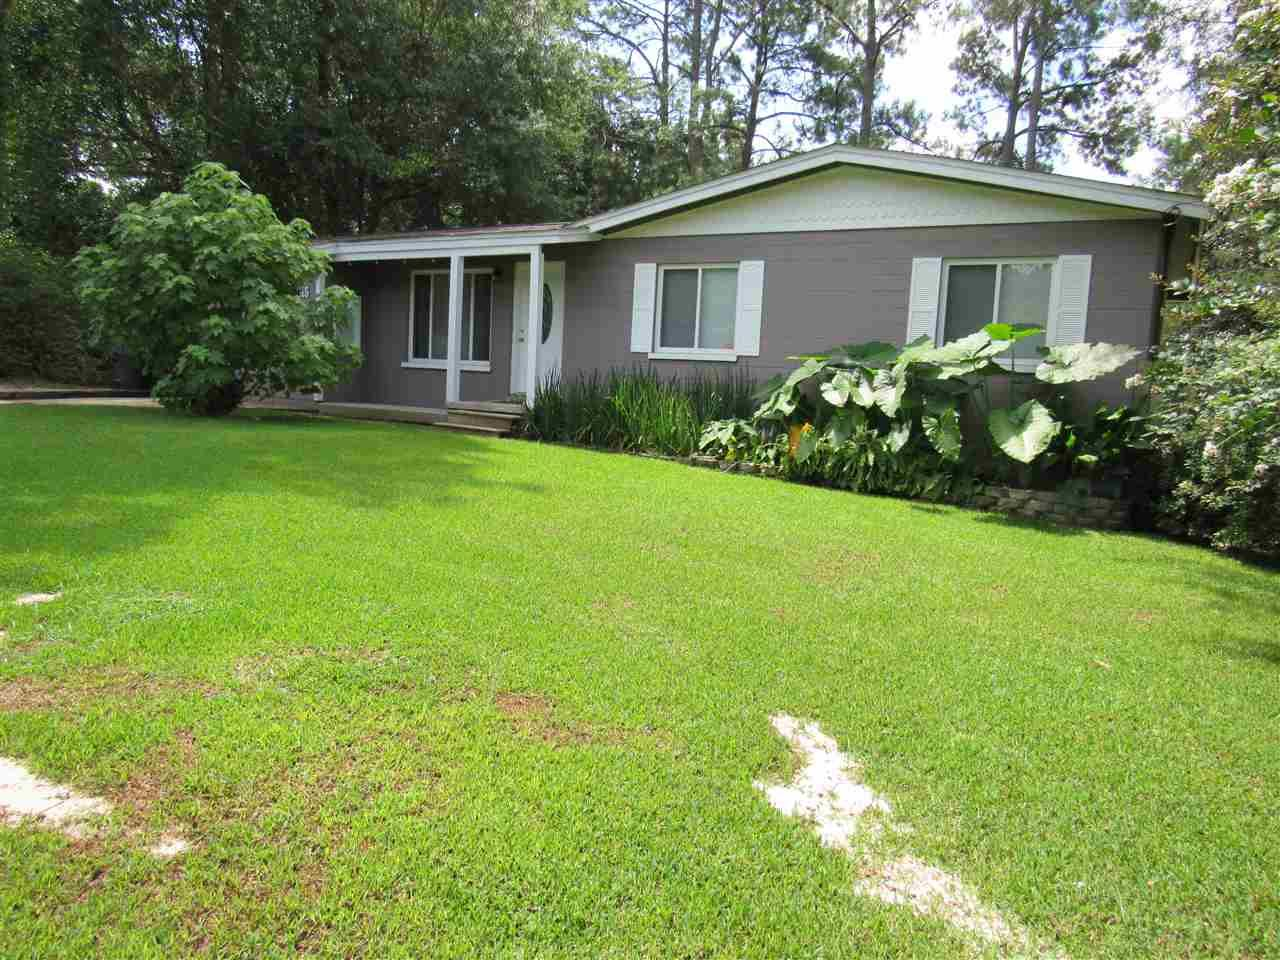 Photo of 1815 Mayhew Street, TALLAHASSEE, FL 32304 (MLS # 314297)